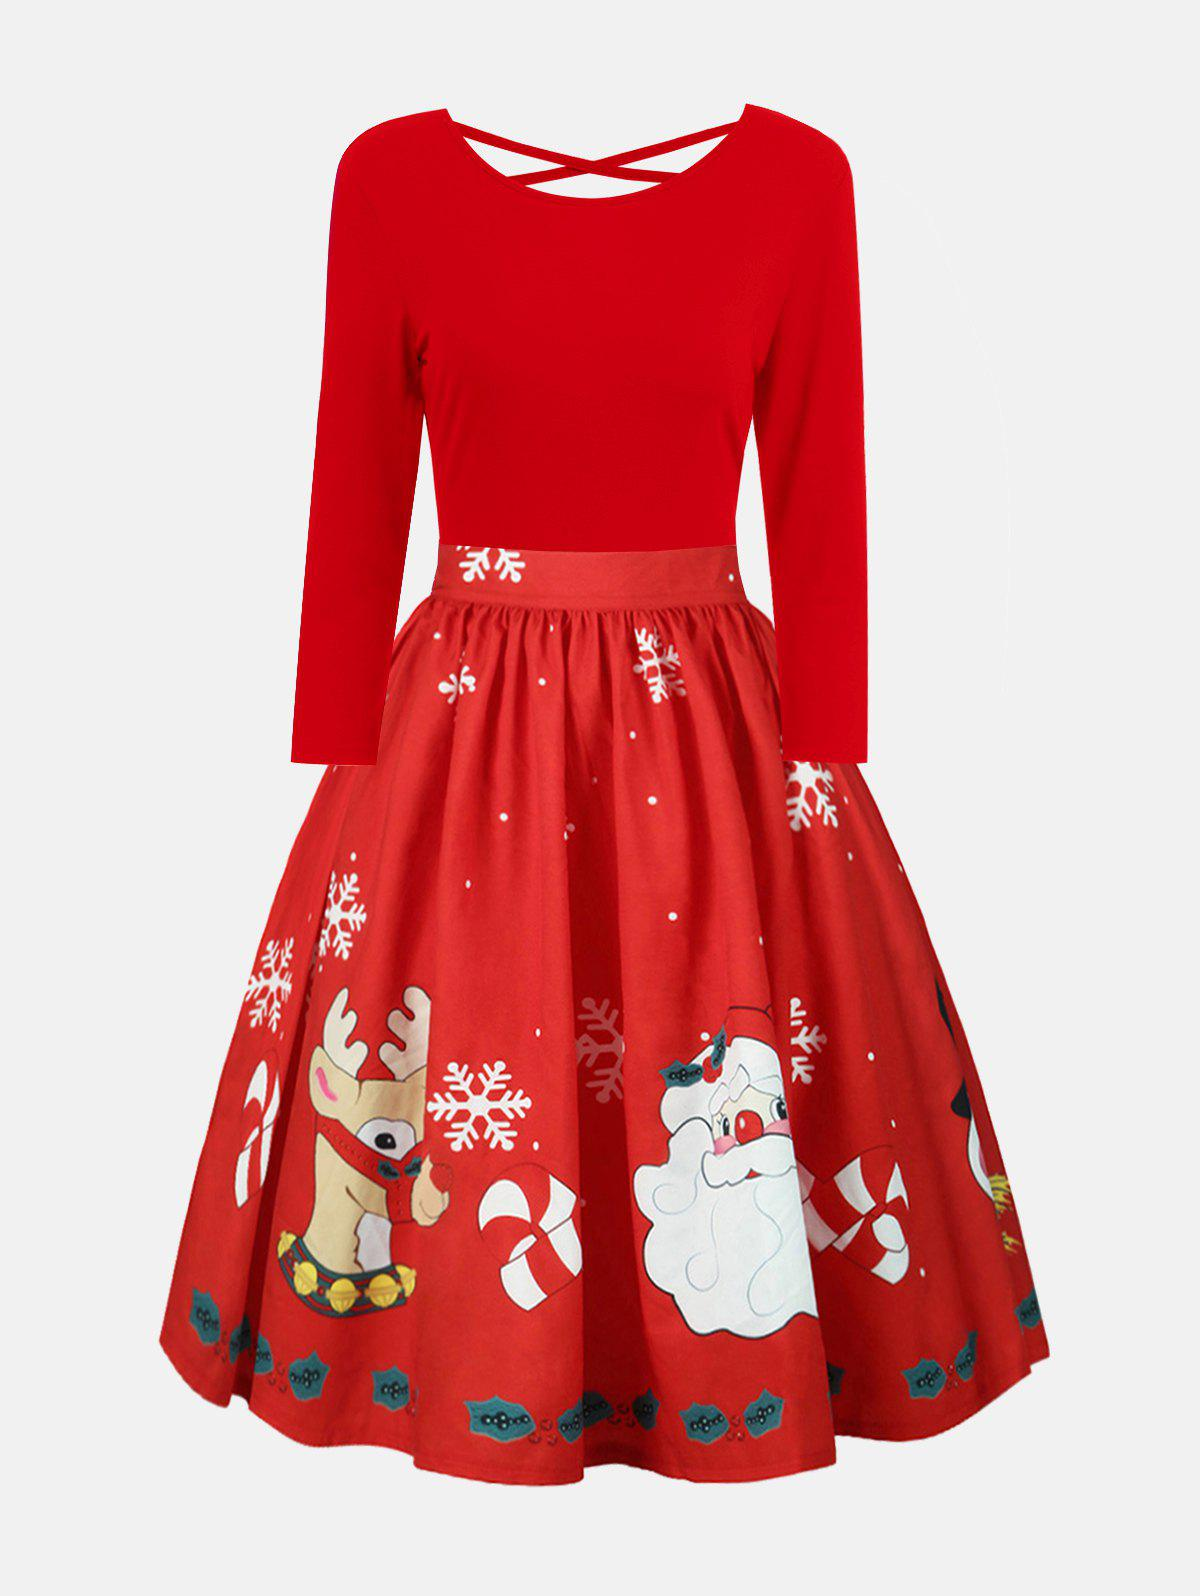 Plus Size Christmas Criss Cross Print DressWOMEN<br><br>Size: 2XL; Color: BRIGHT RED; Style: Vintage; Material: Polyester; Silhouette: A-Line; Dresses Length: Mid-Calf; Neckline: Round Collar; Sleeve Length: Long Sleeves; Embellishment: Criss-Cross; Pattern Type: Print; With Belt: No; Season: Fall,Spring; Weight: 0.2700kg; Package Contents: 1 x Dress;